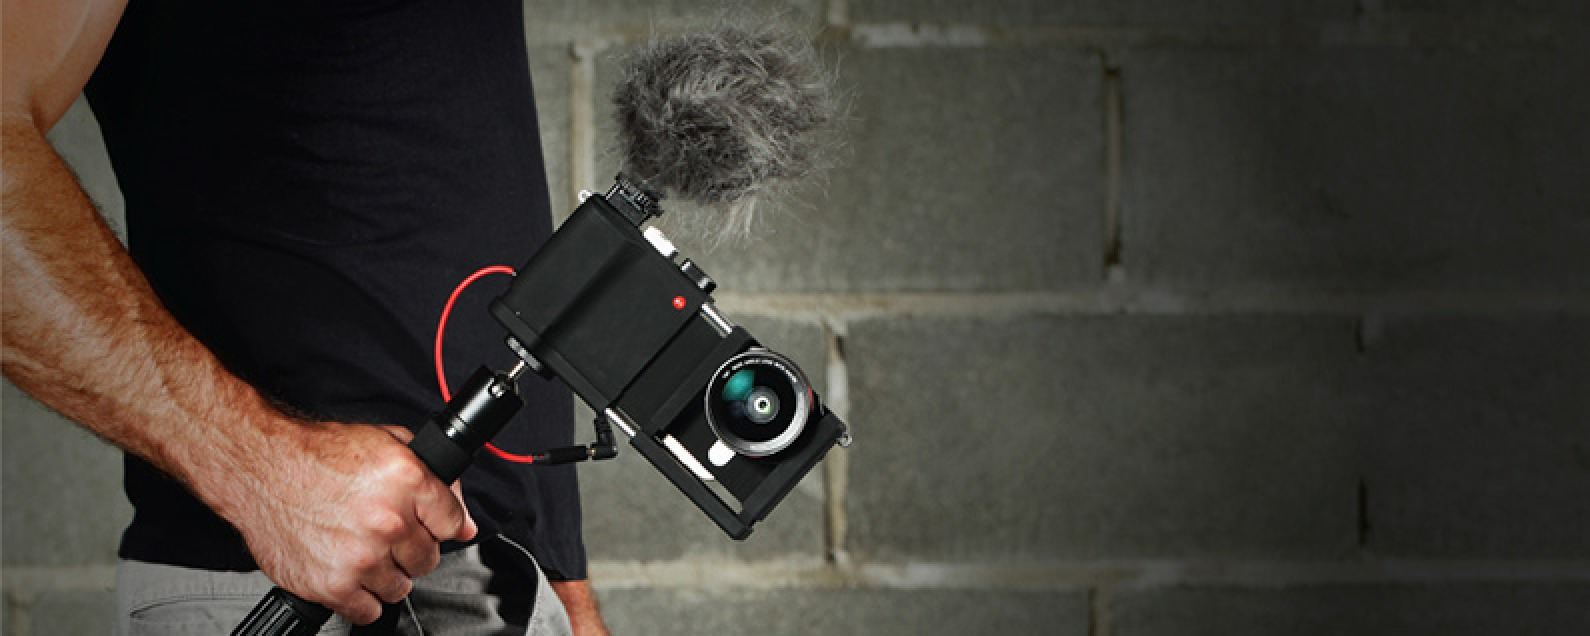 Review: Amazingly Flexible Videography Kit for Smartphones